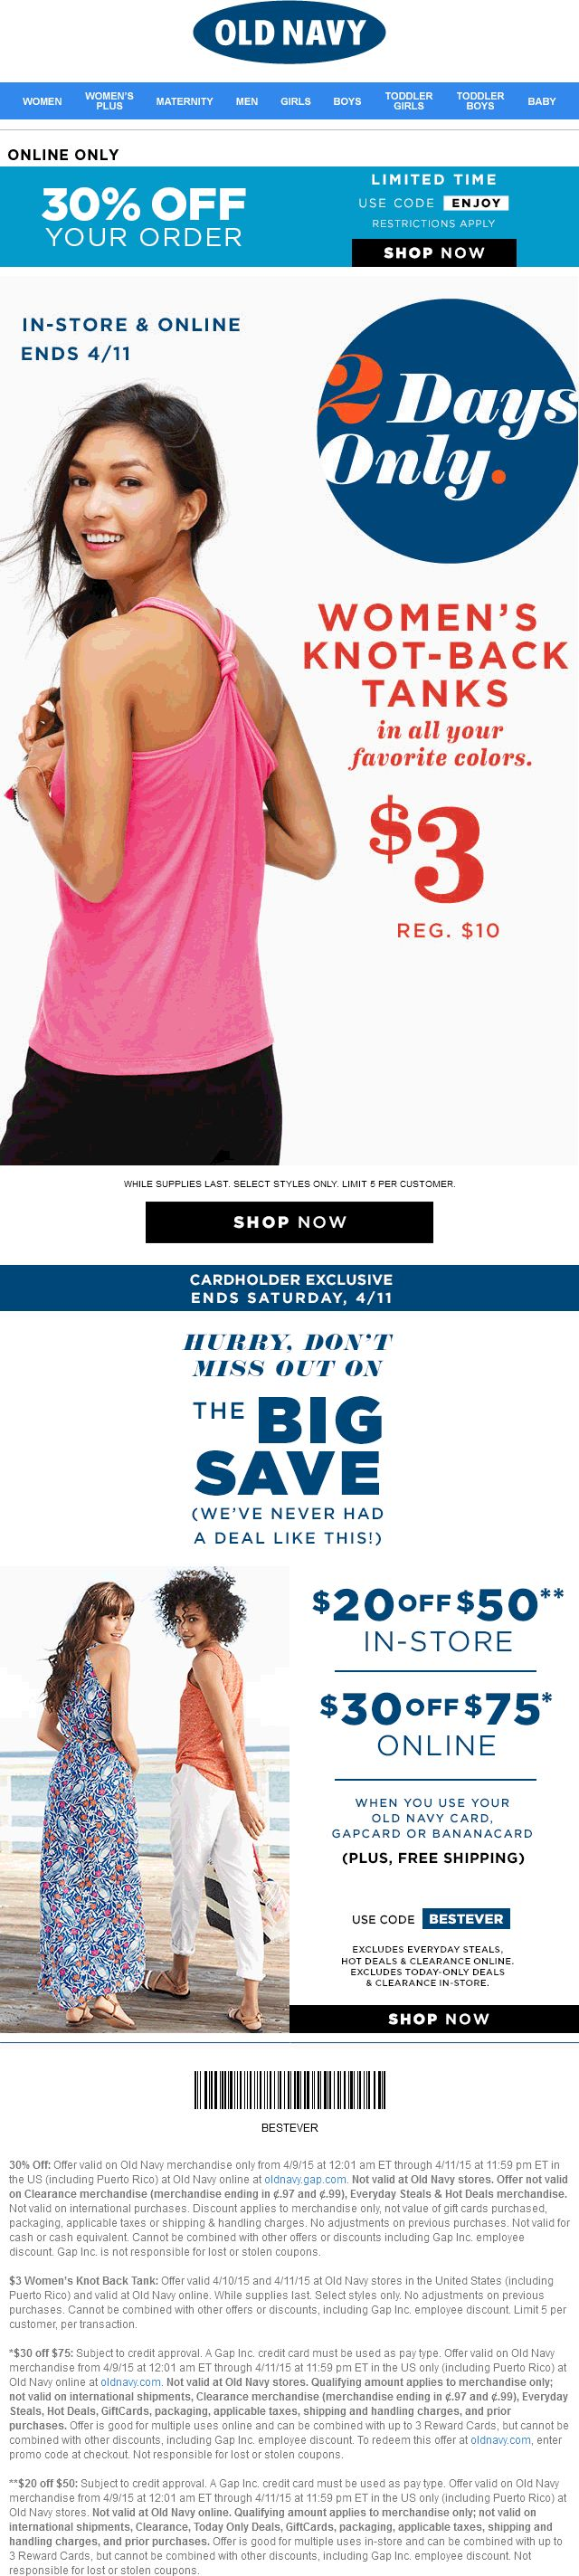 Pinned april 11th 30 off online more today at old navy